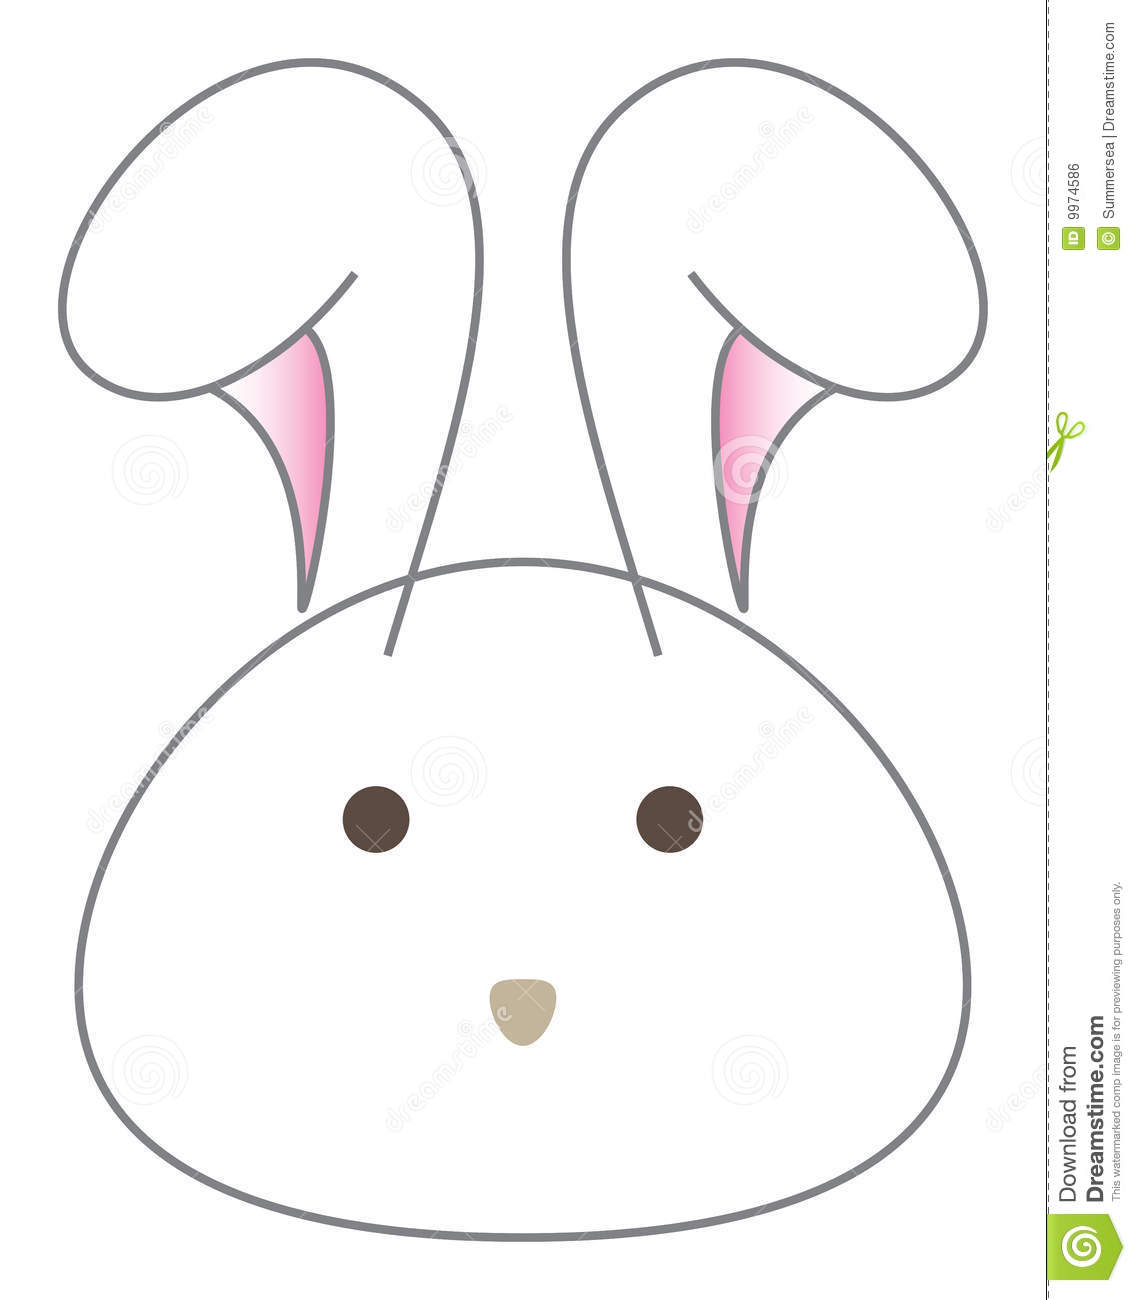 White Rabbit Cartoon Head Vector Royalty Free Stock Image